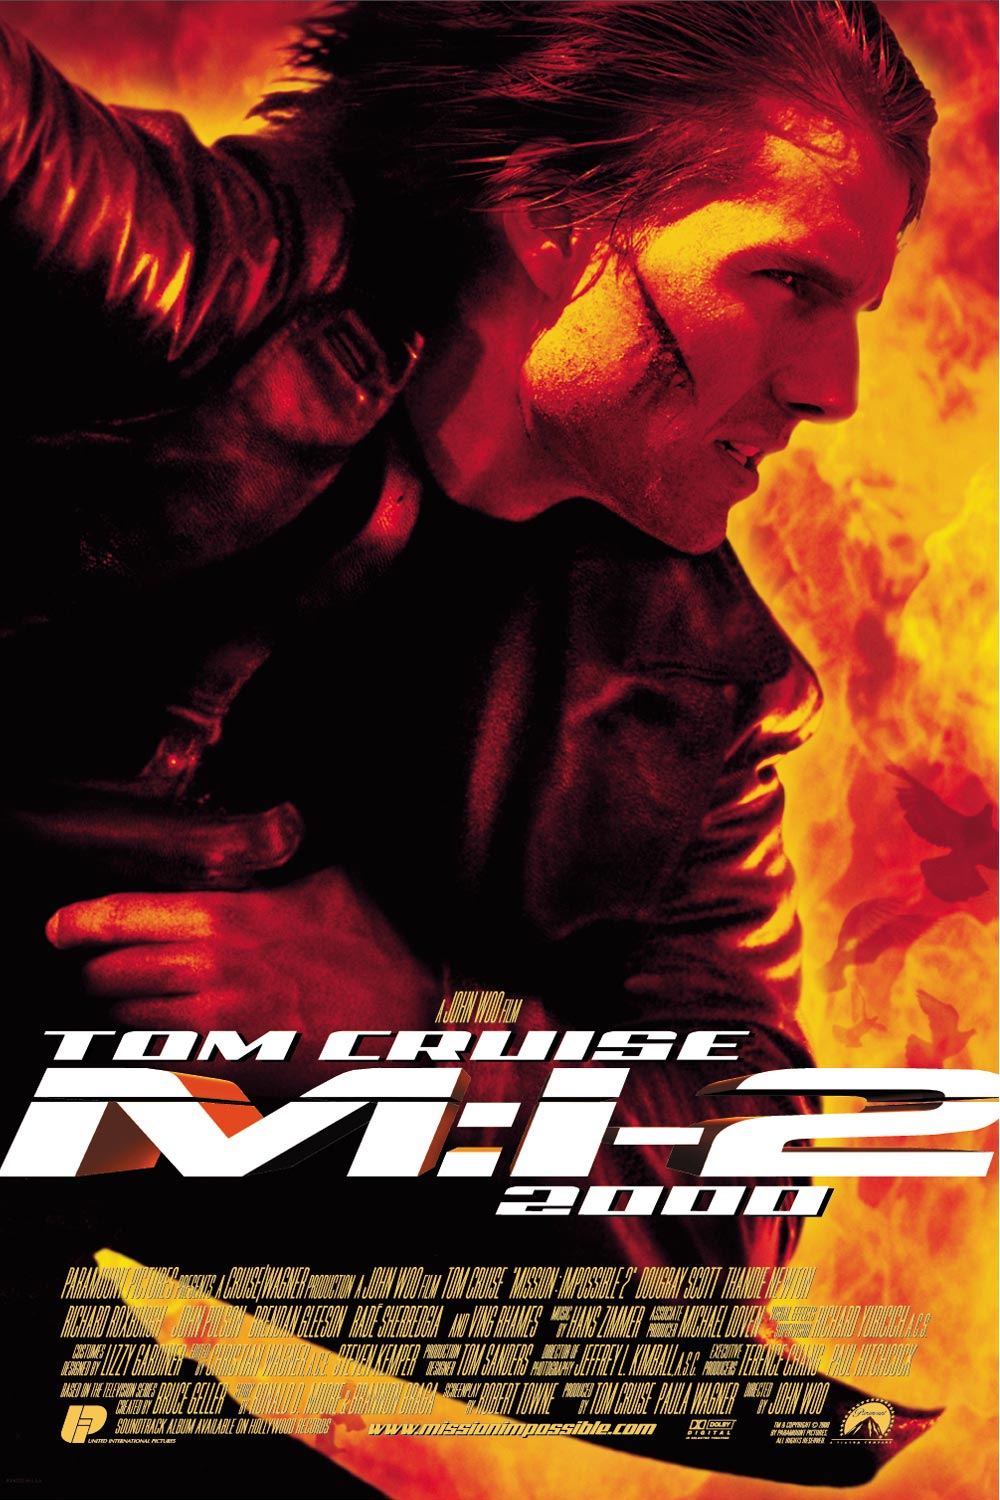 a review of the movie mission impossible ii Mission: impossible was a fast paced espionage thriller that actually made you think, which is what i like in a movie since john woo, who is one of the kings of the action genre, took over for brian de palma, you can expect mission: impossible ii to be an intense action movie with a majorly dumbed down plot.